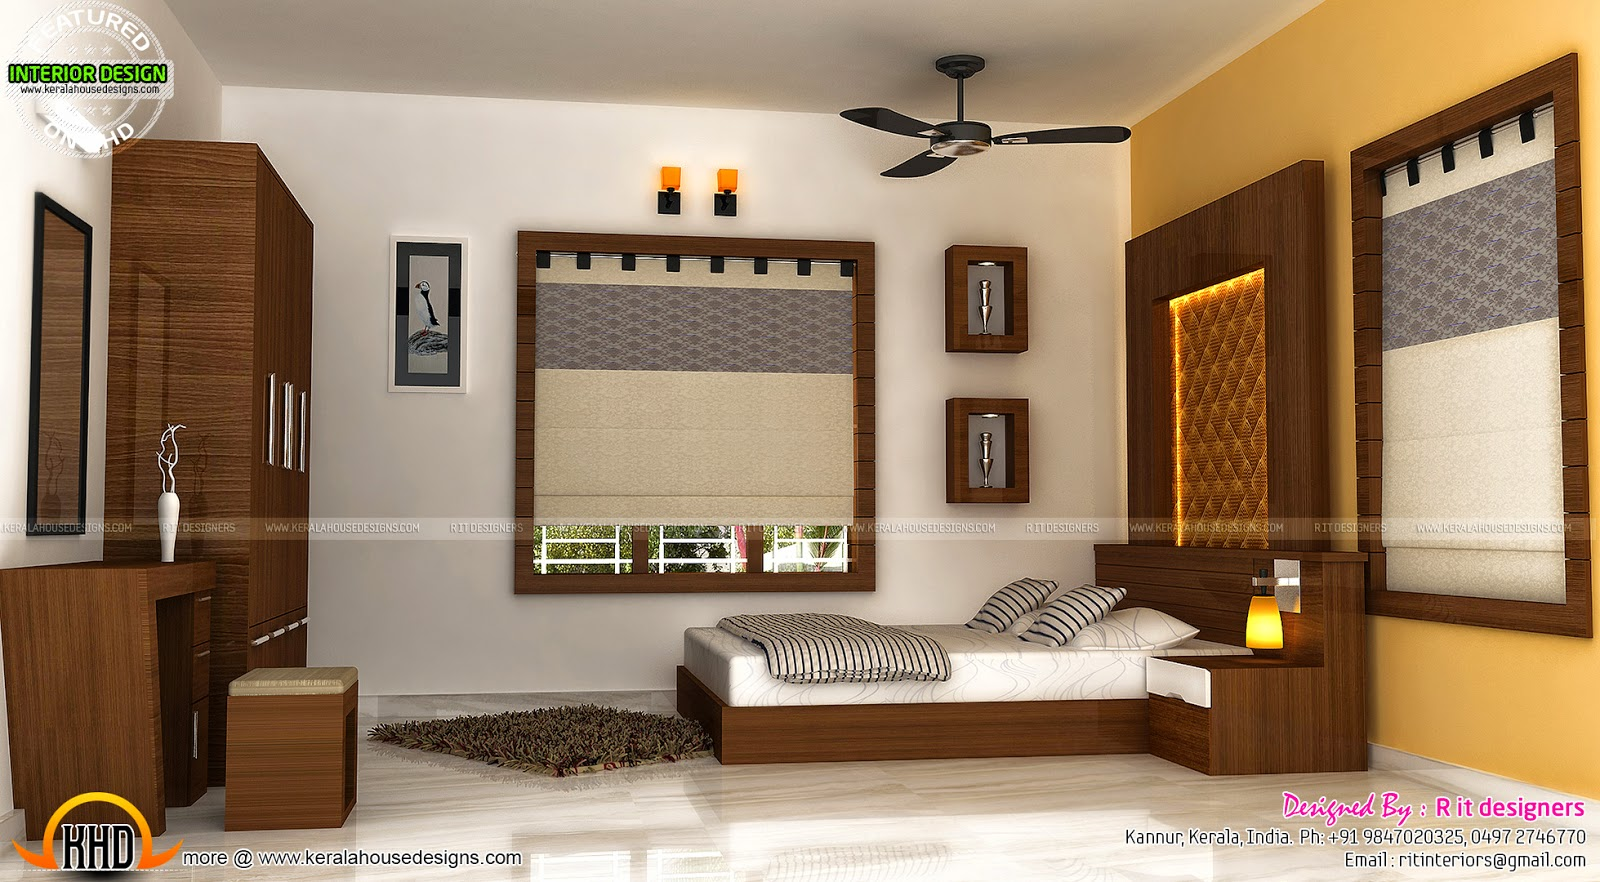 Staircase bedroom dining interiors kerala home design for House of interior design